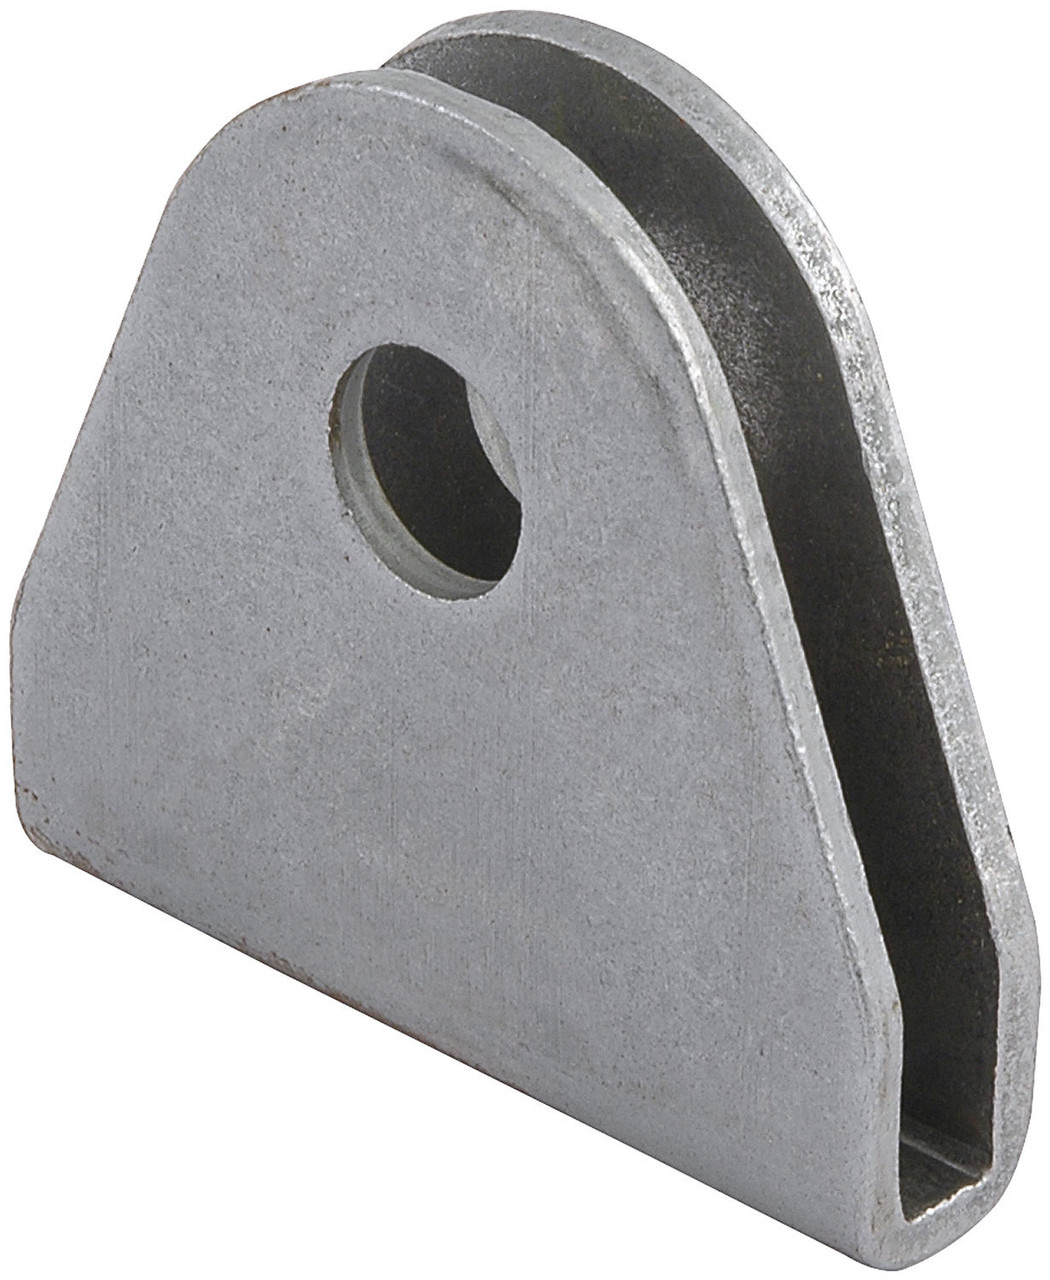 ALL60031 by ALLSTAR PERFORMANCE Seat Belt Tab, Double Shear, 1/2 in Seat Belt Mounting Hole, Steel, Natural, Each